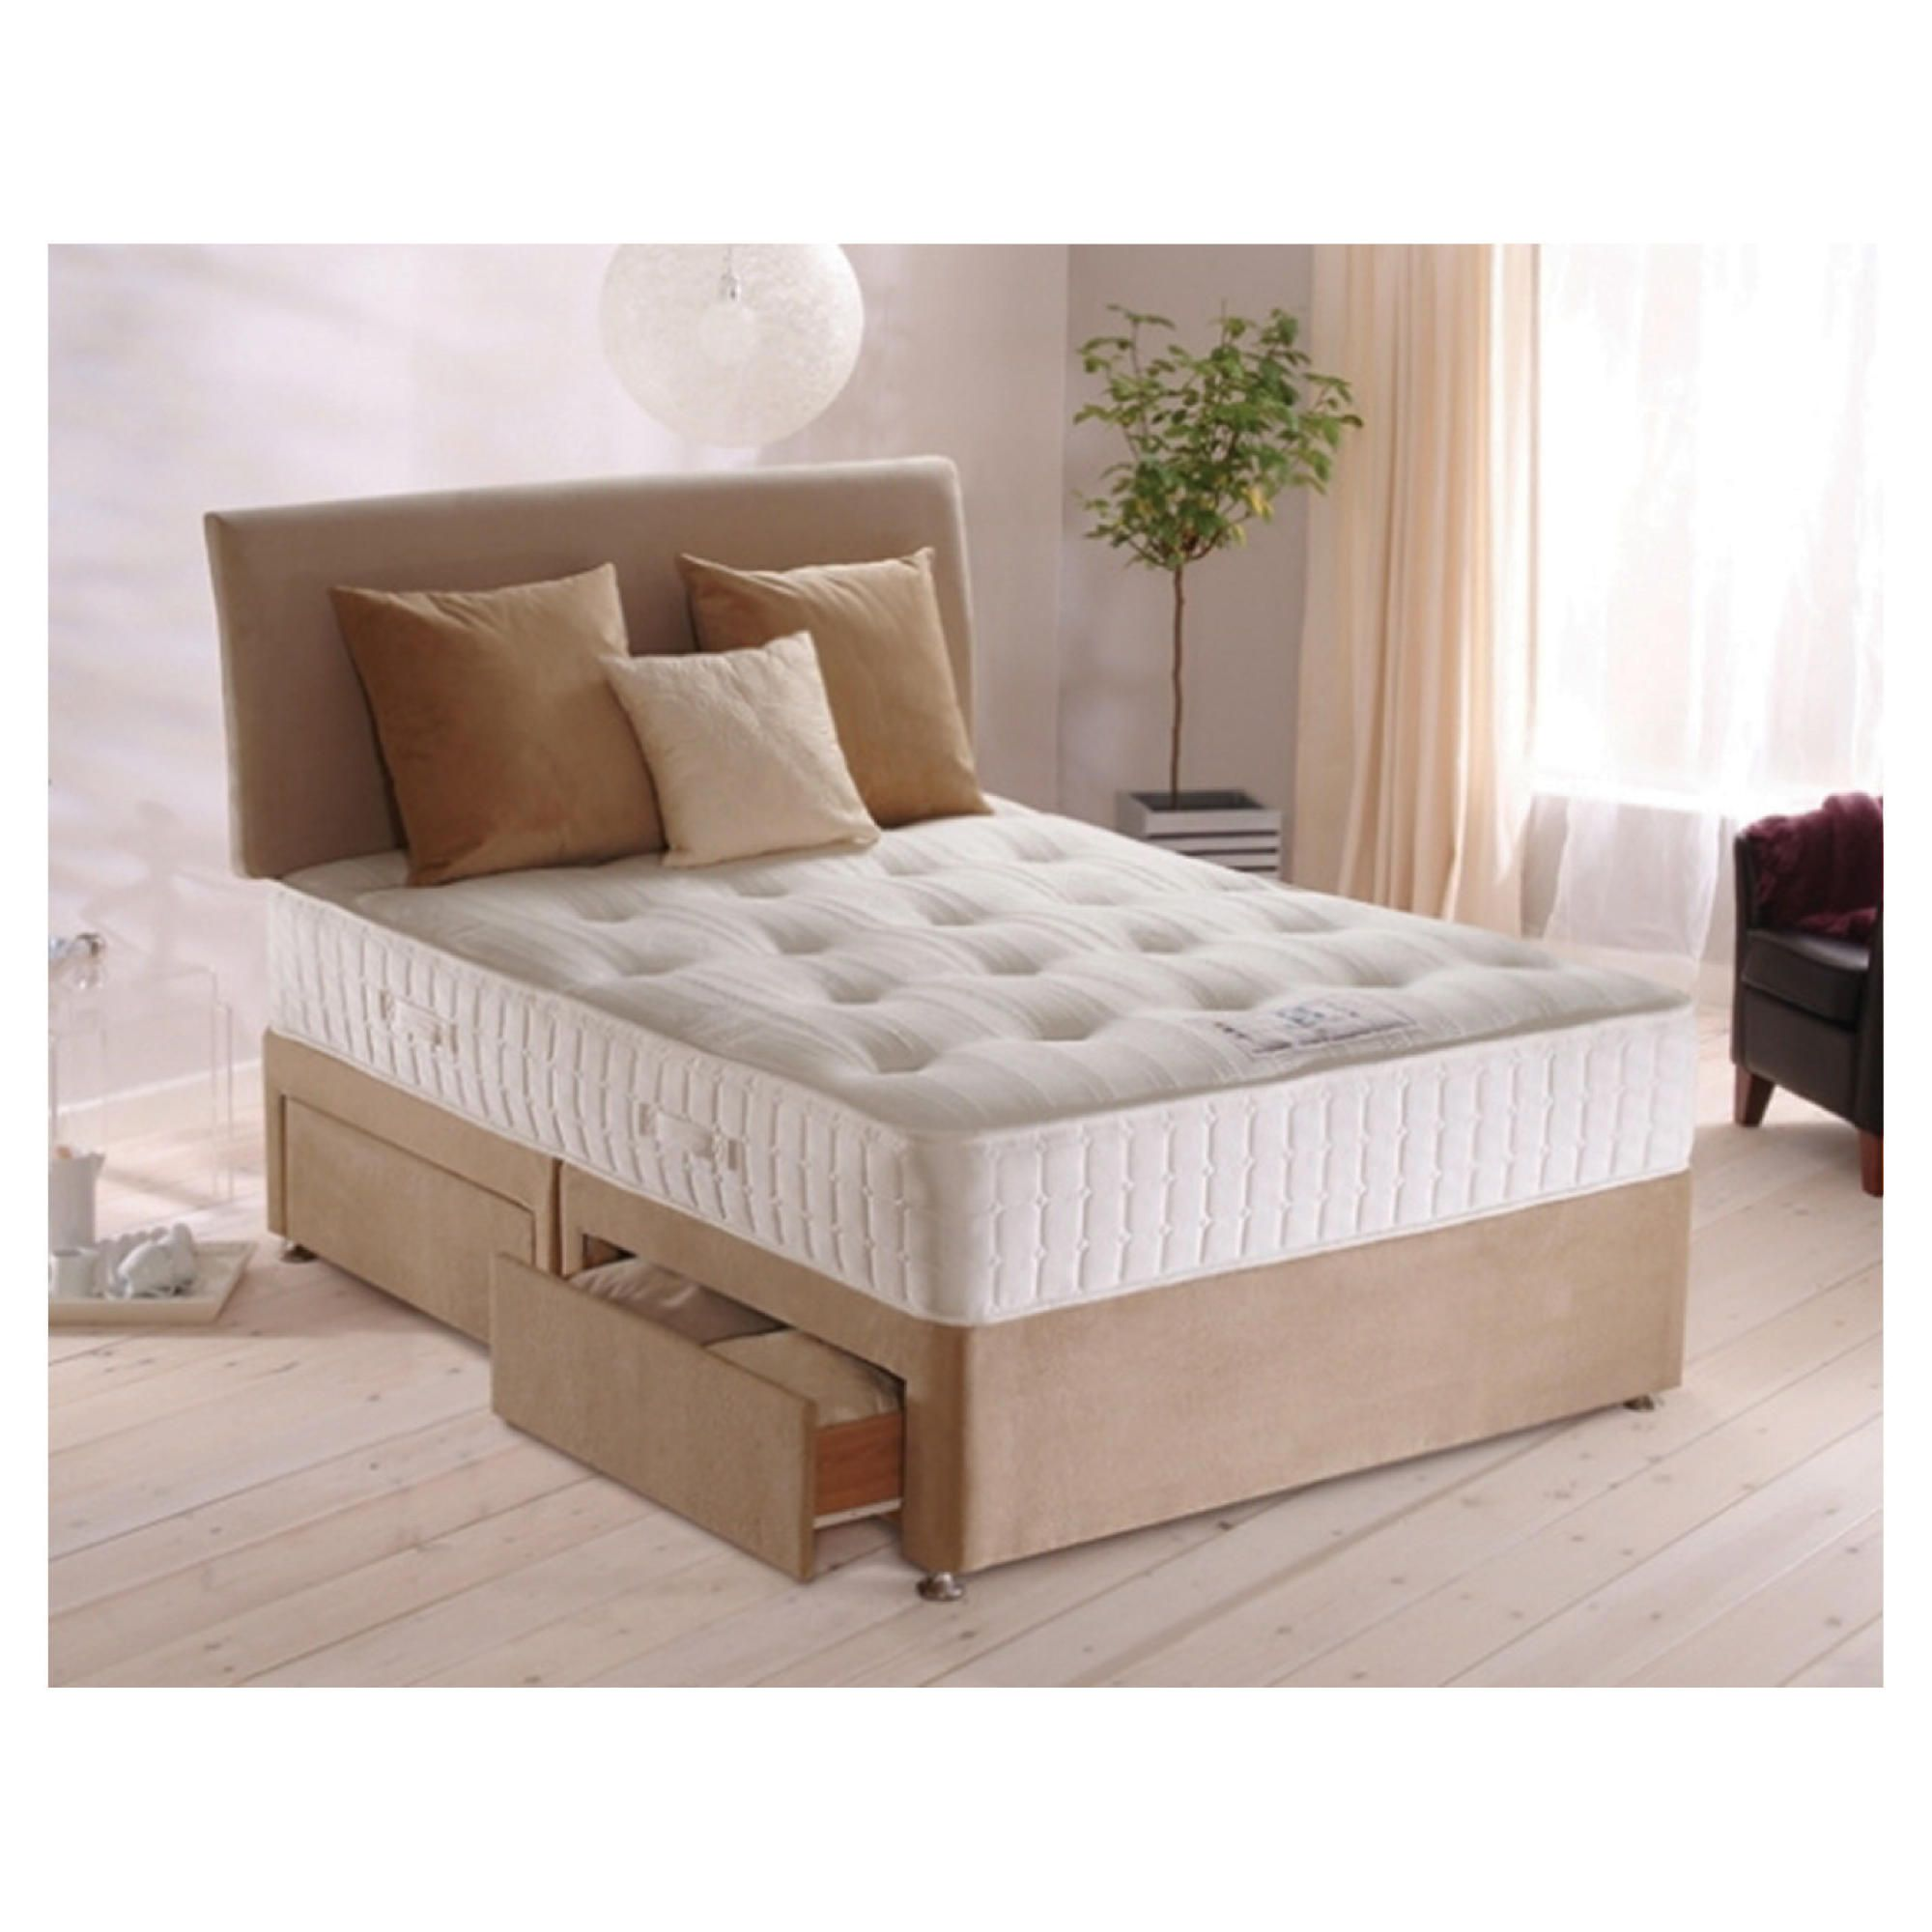 Sealy Purity Pocket Ortho Superking 4 Drawer Divan Bed at Tesco Direct